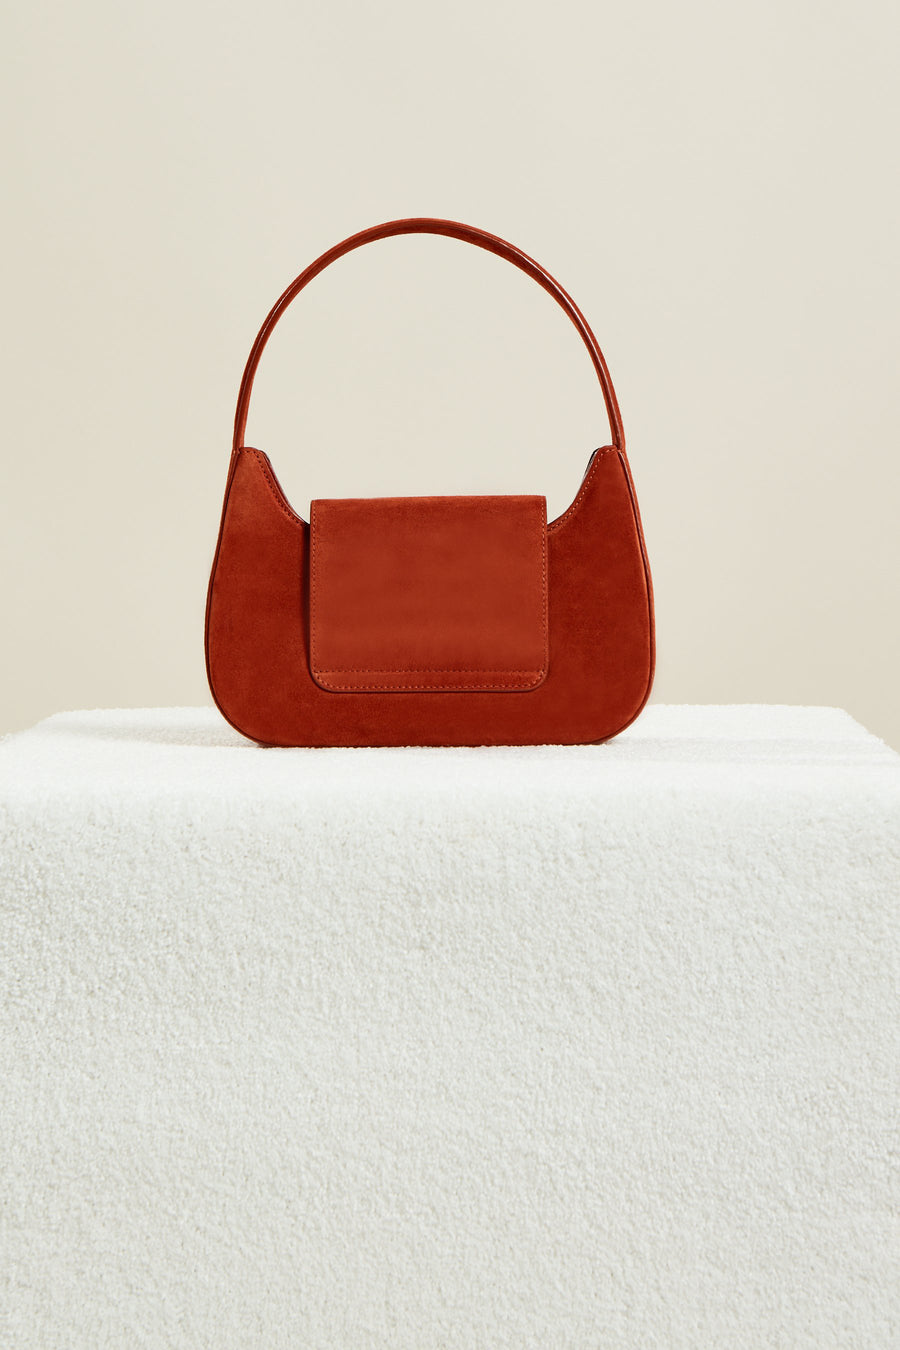 Retro Bag in Rust Suede